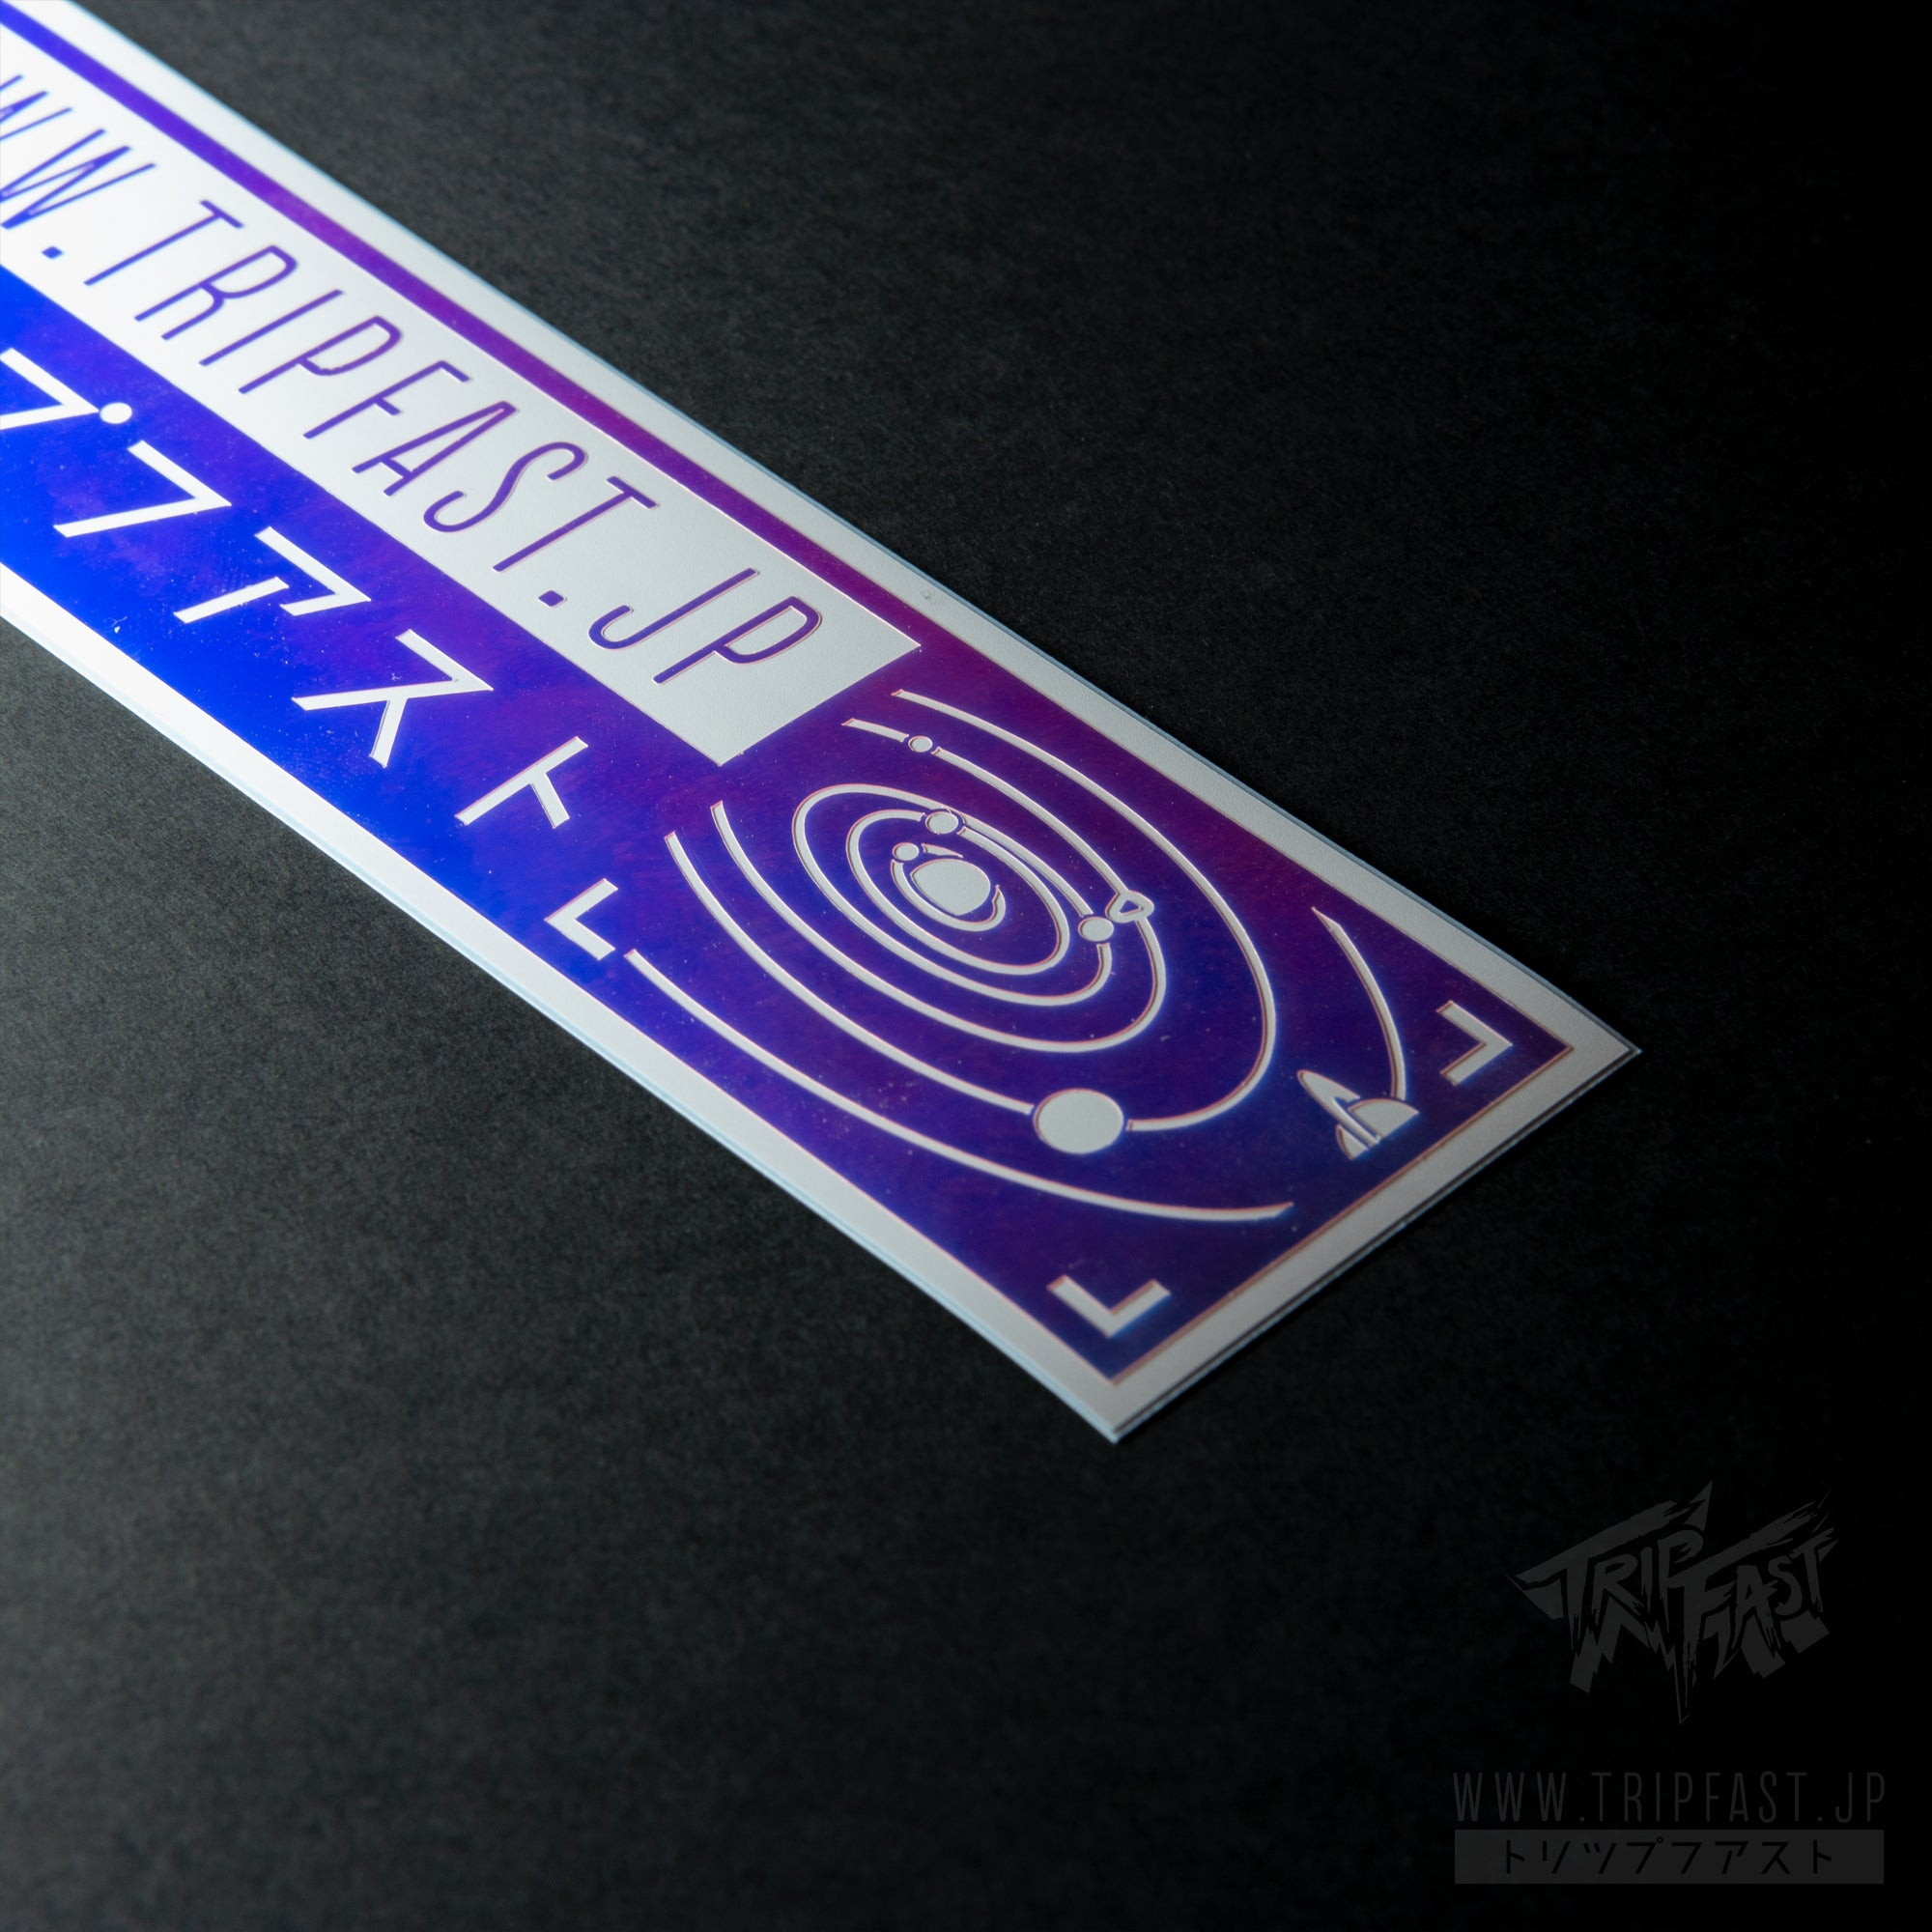 TRIPFAST Orbital Two Layer Sticker